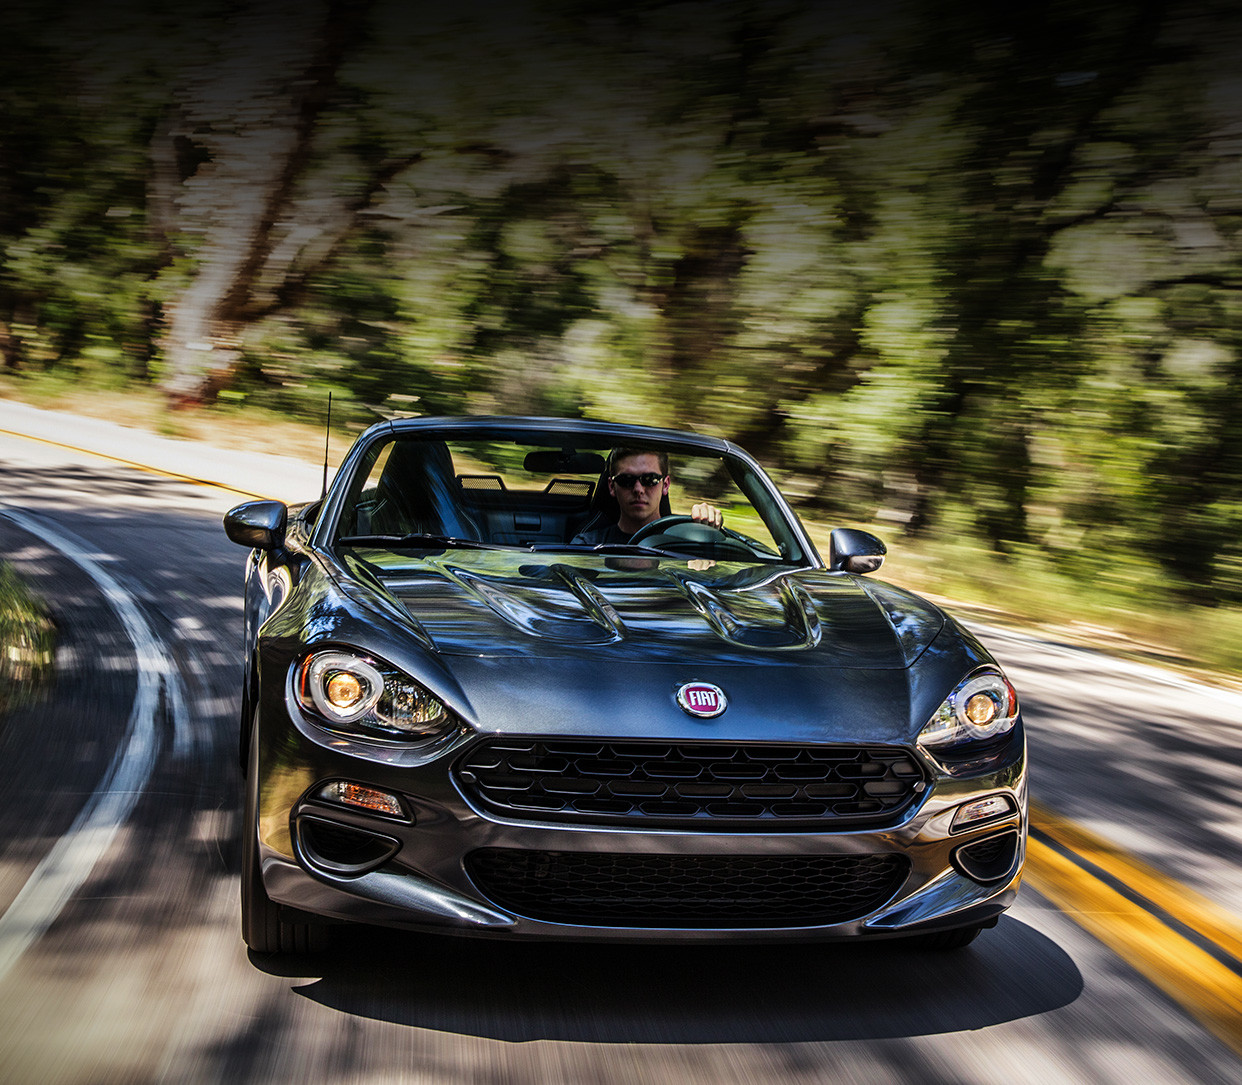 White 2020 FIAT 124 Spider being driven on a country road in a sunset